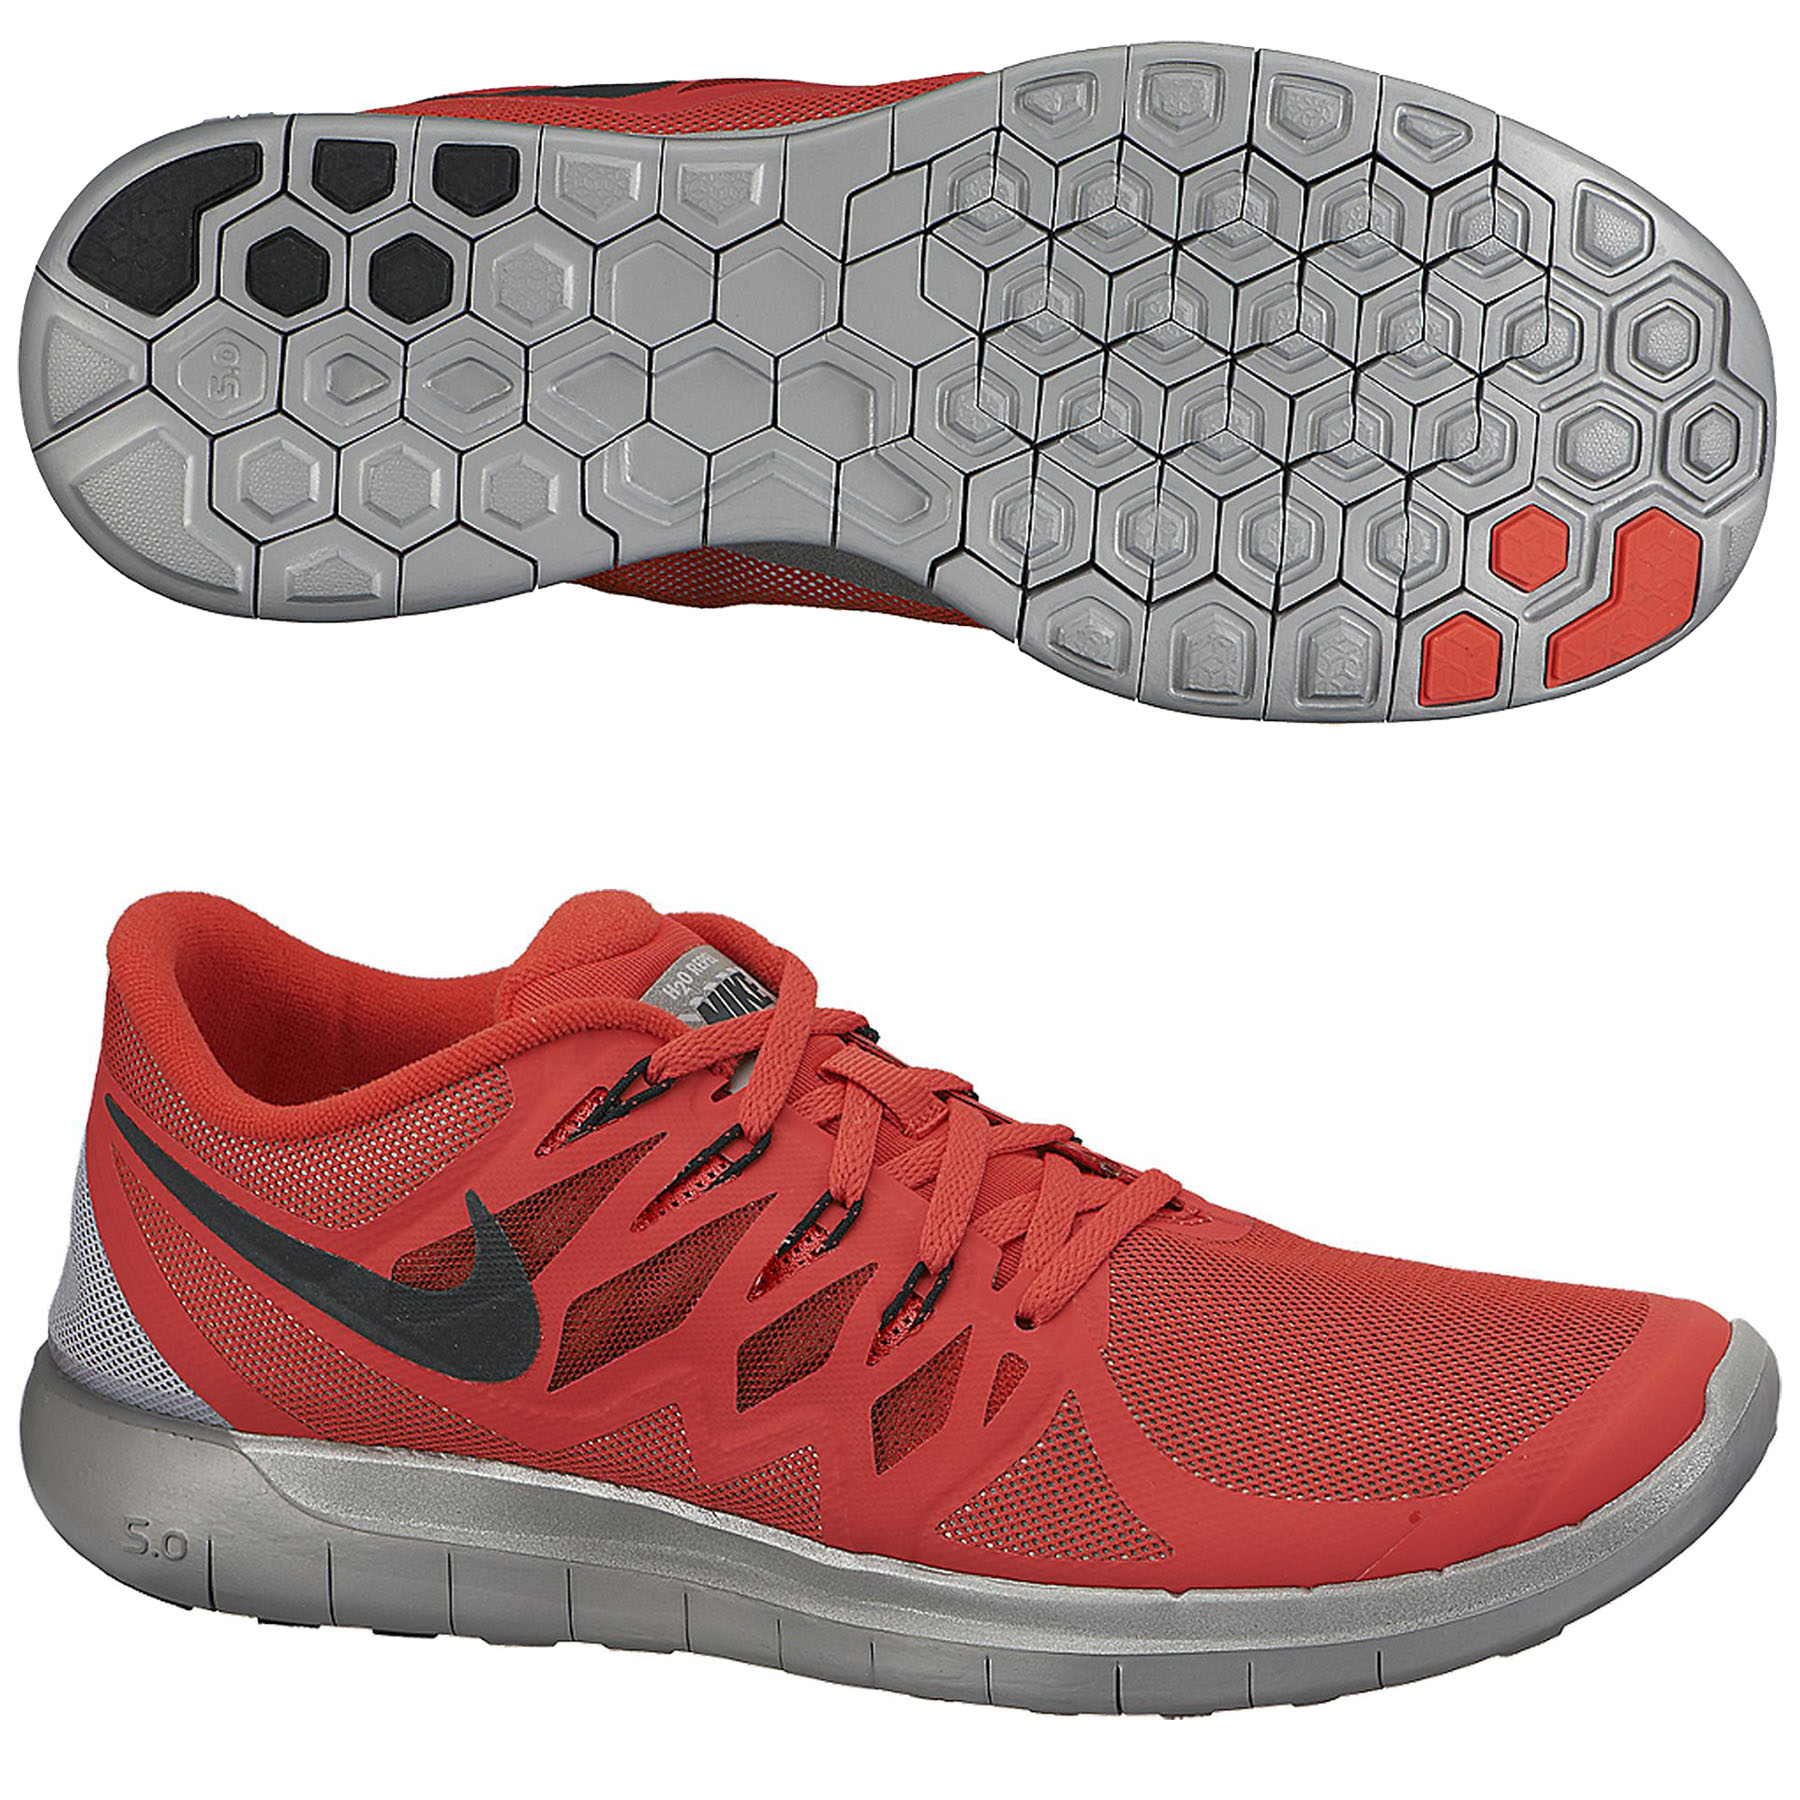 Nike Free 5.0 Flash Trainers Red